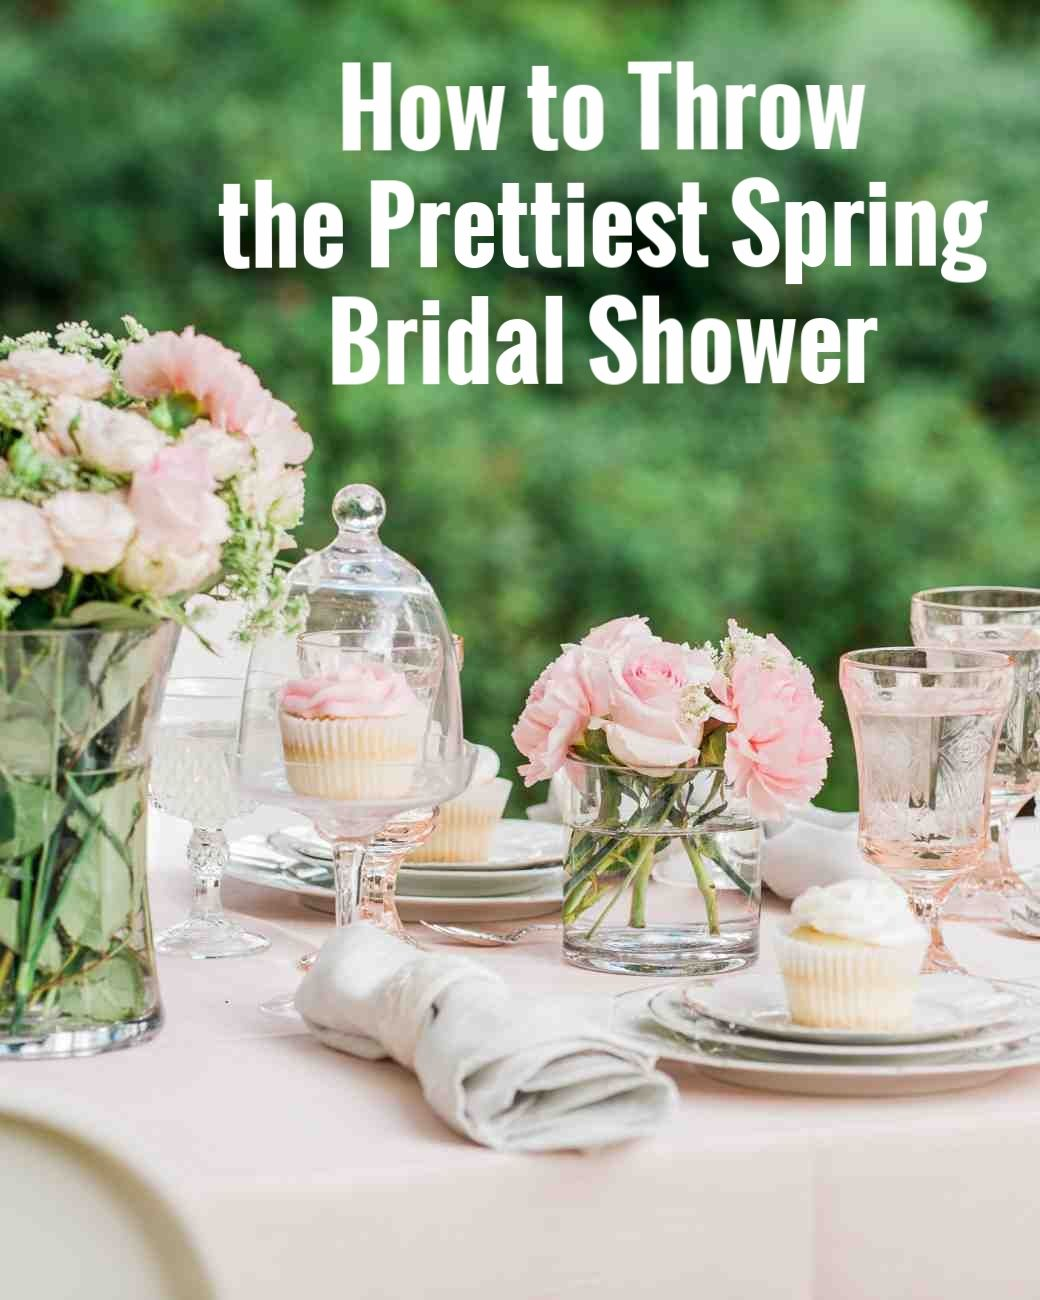 How To Throw The Prettiest Spring Bridal Shower Bridal Shower